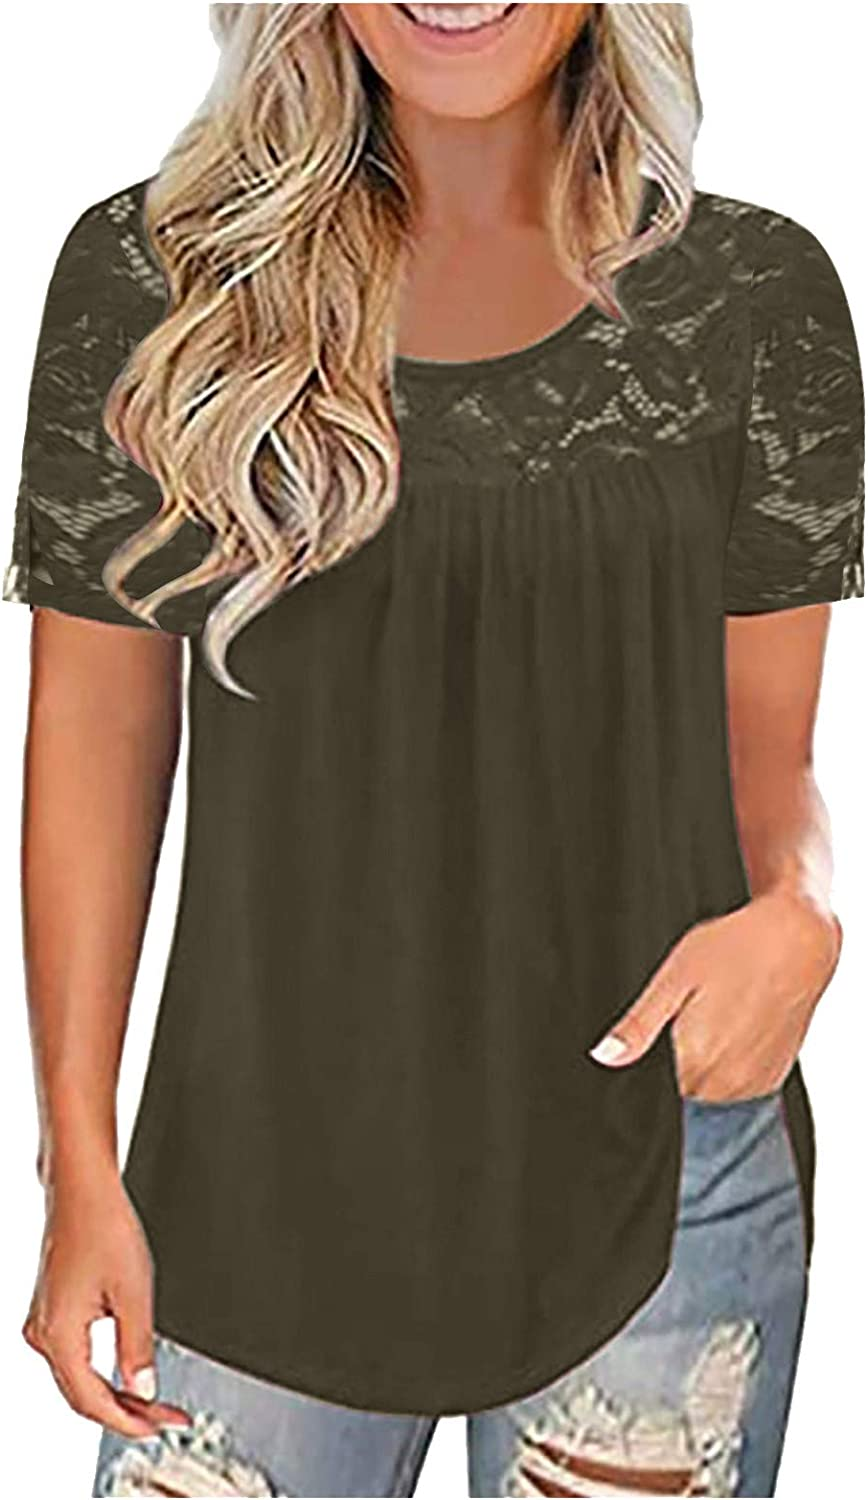 Womens Summer Tops,Womens Fashion Short Sleeve Shirts Lace Neck Tshirts Casual Workout Basic Tees Blouse Summer Tops